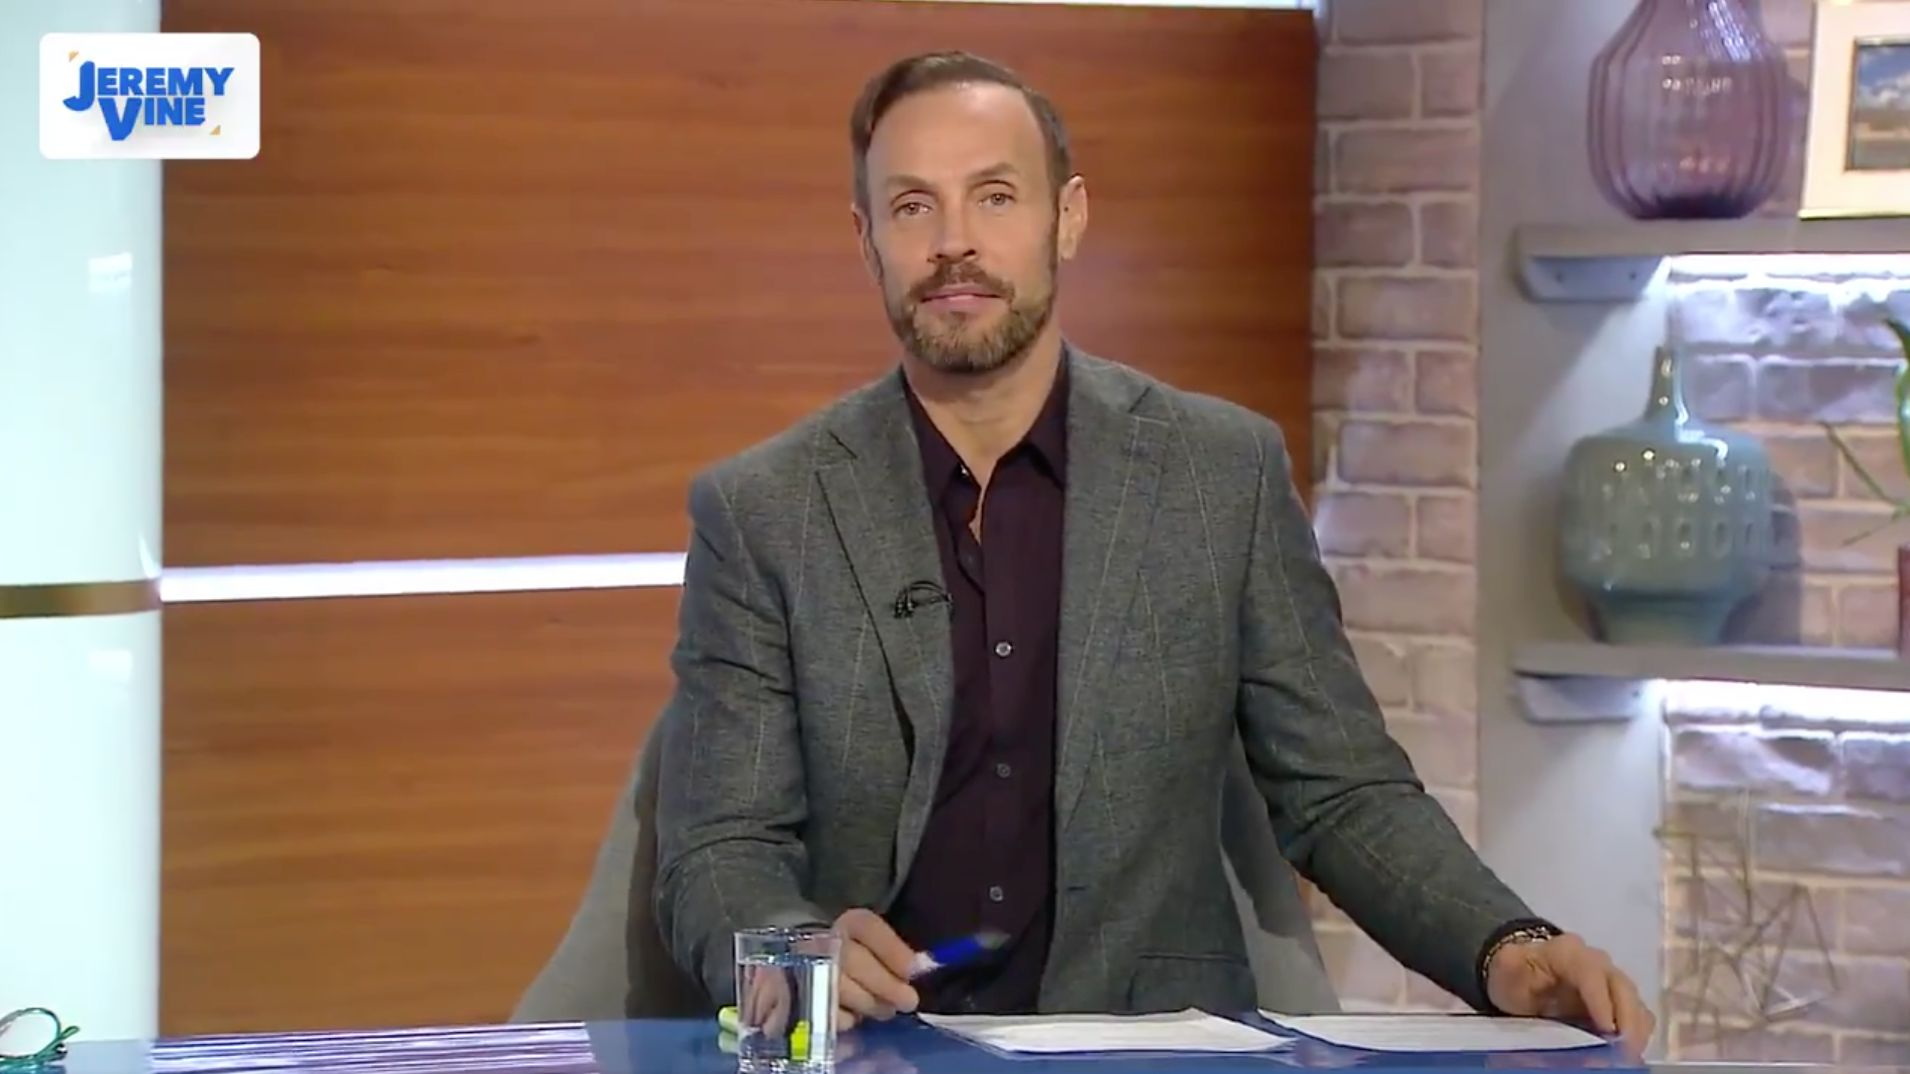 Jason Gardiner on Jeremy Vine on